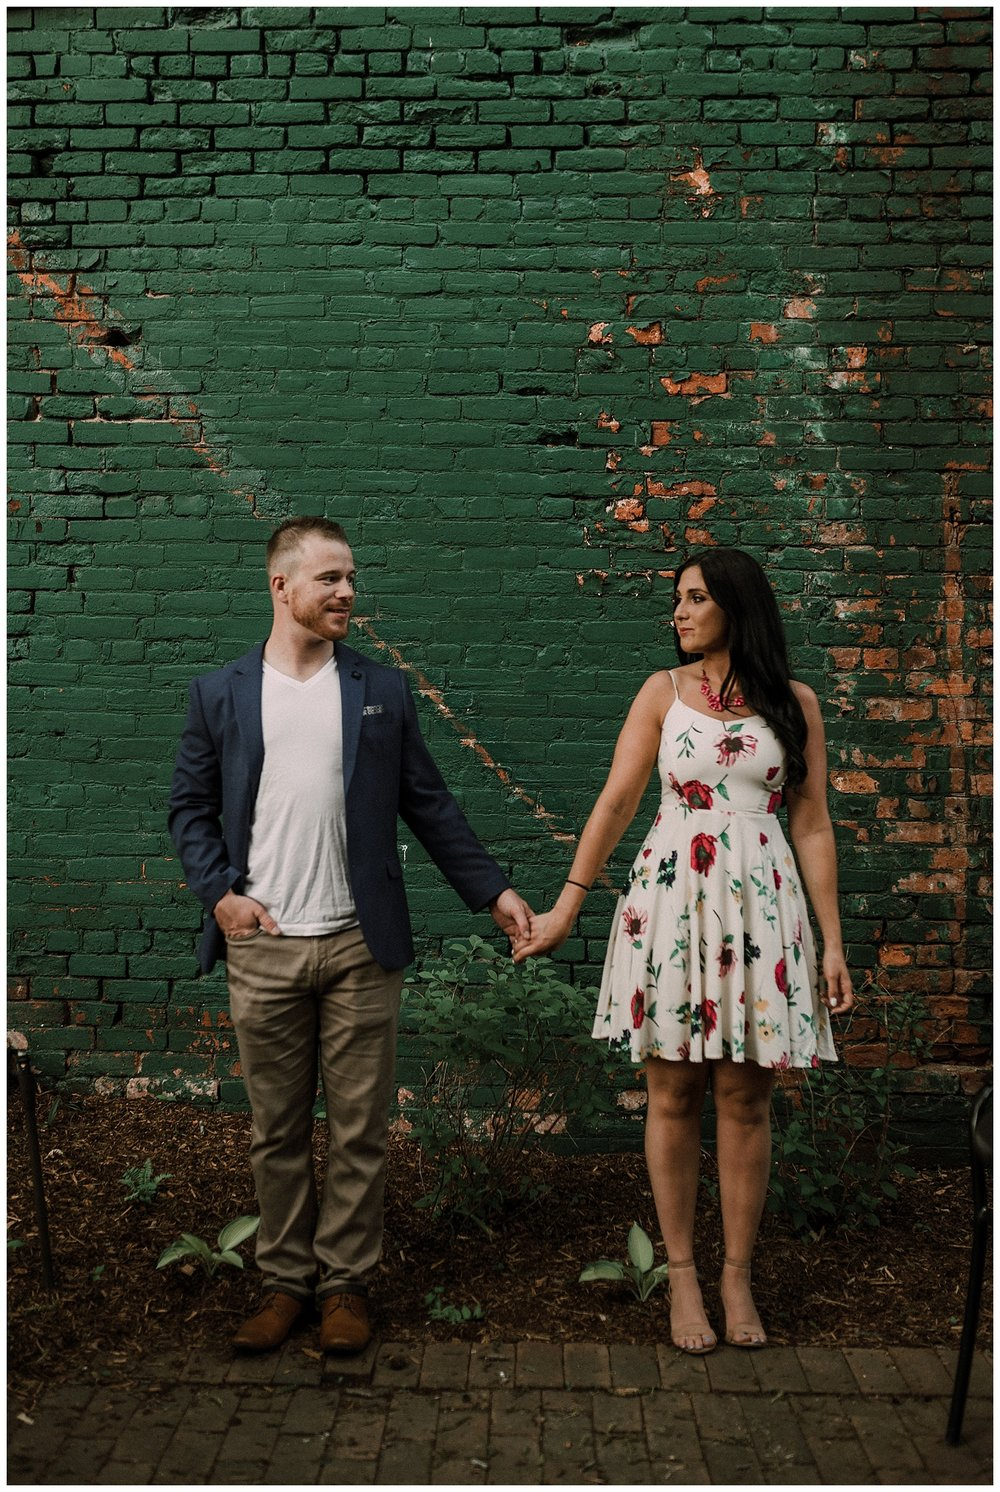 katie marie photography - dundas hamilton waterfall engagement photoshoot - wedding photographer_0044.jpg